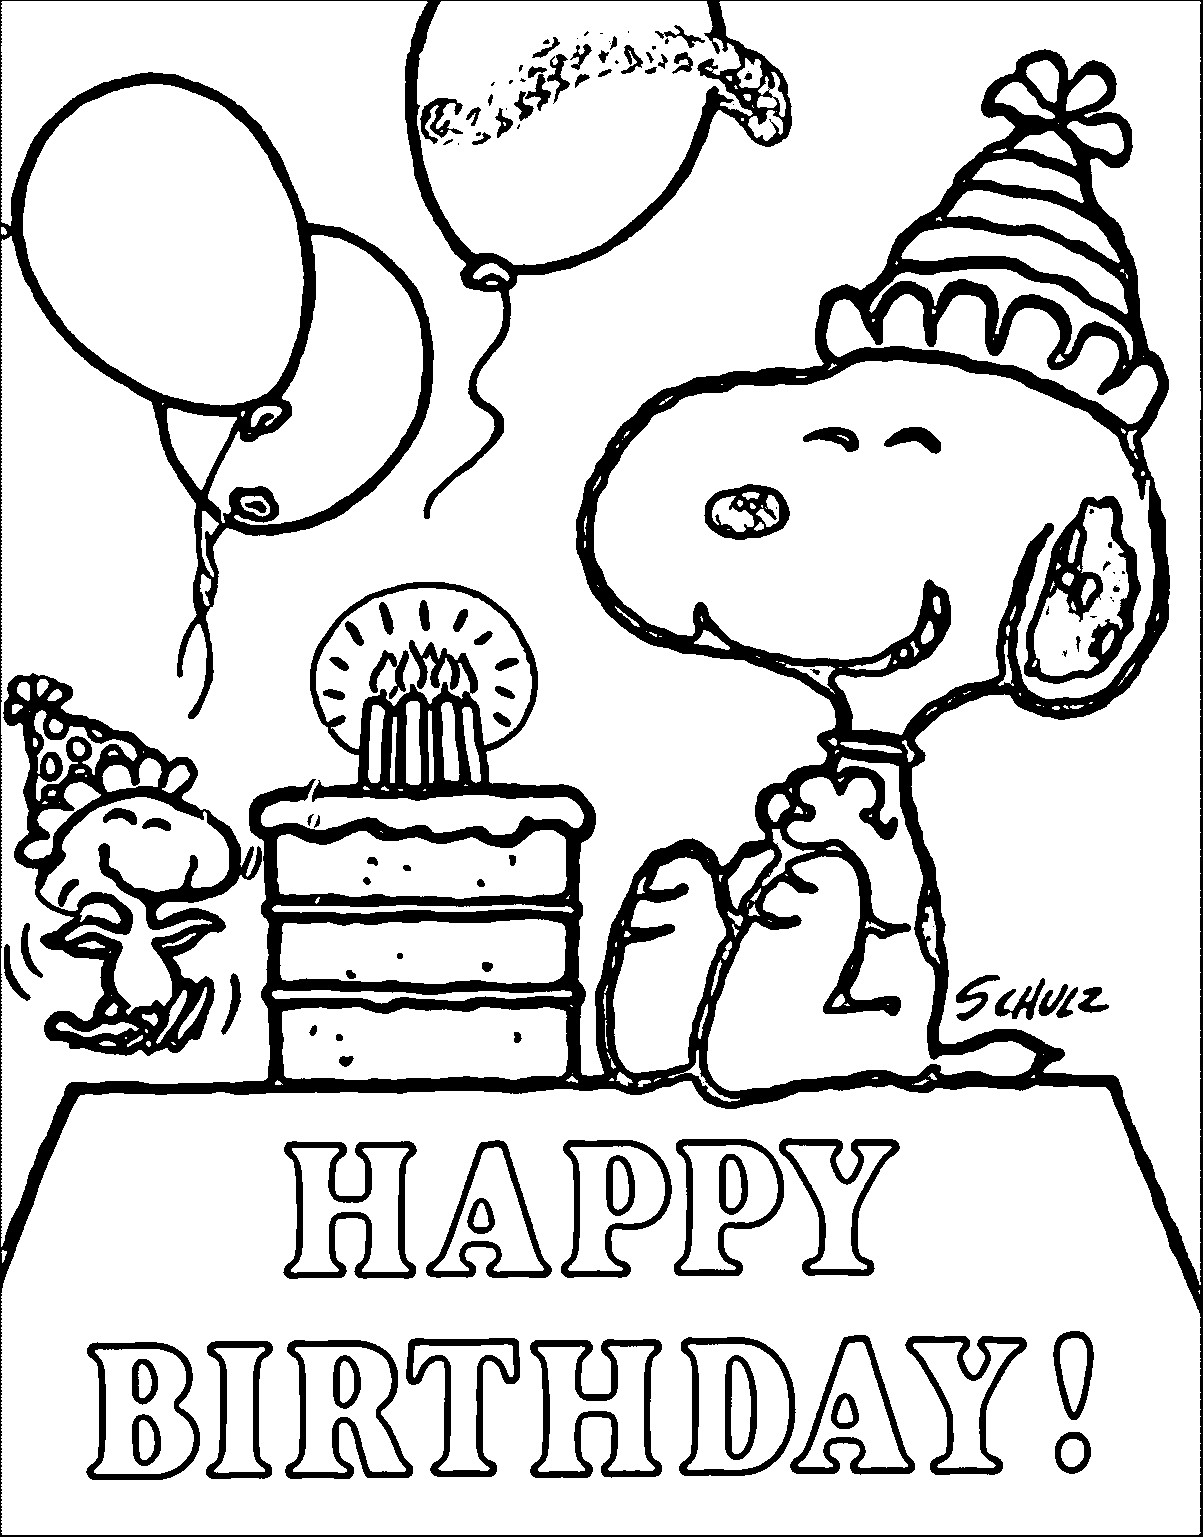 happy birthday coloring pages printable free easy to print happy birthday coloring pages tulamama happy coloring printable pages birthday